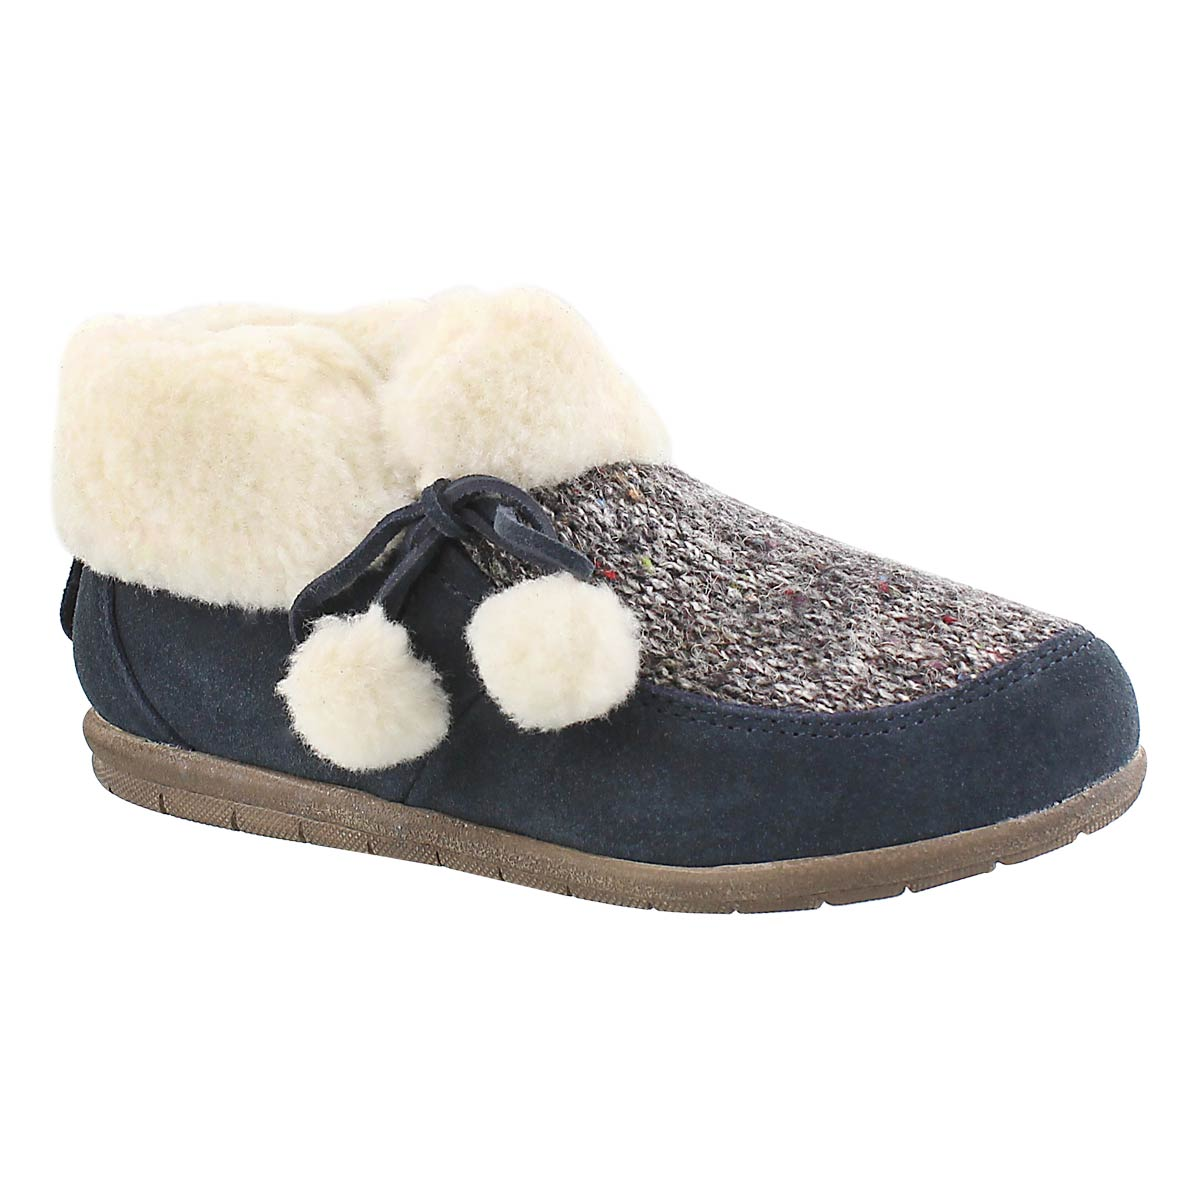 Lds Aspen midnight closed back slipper